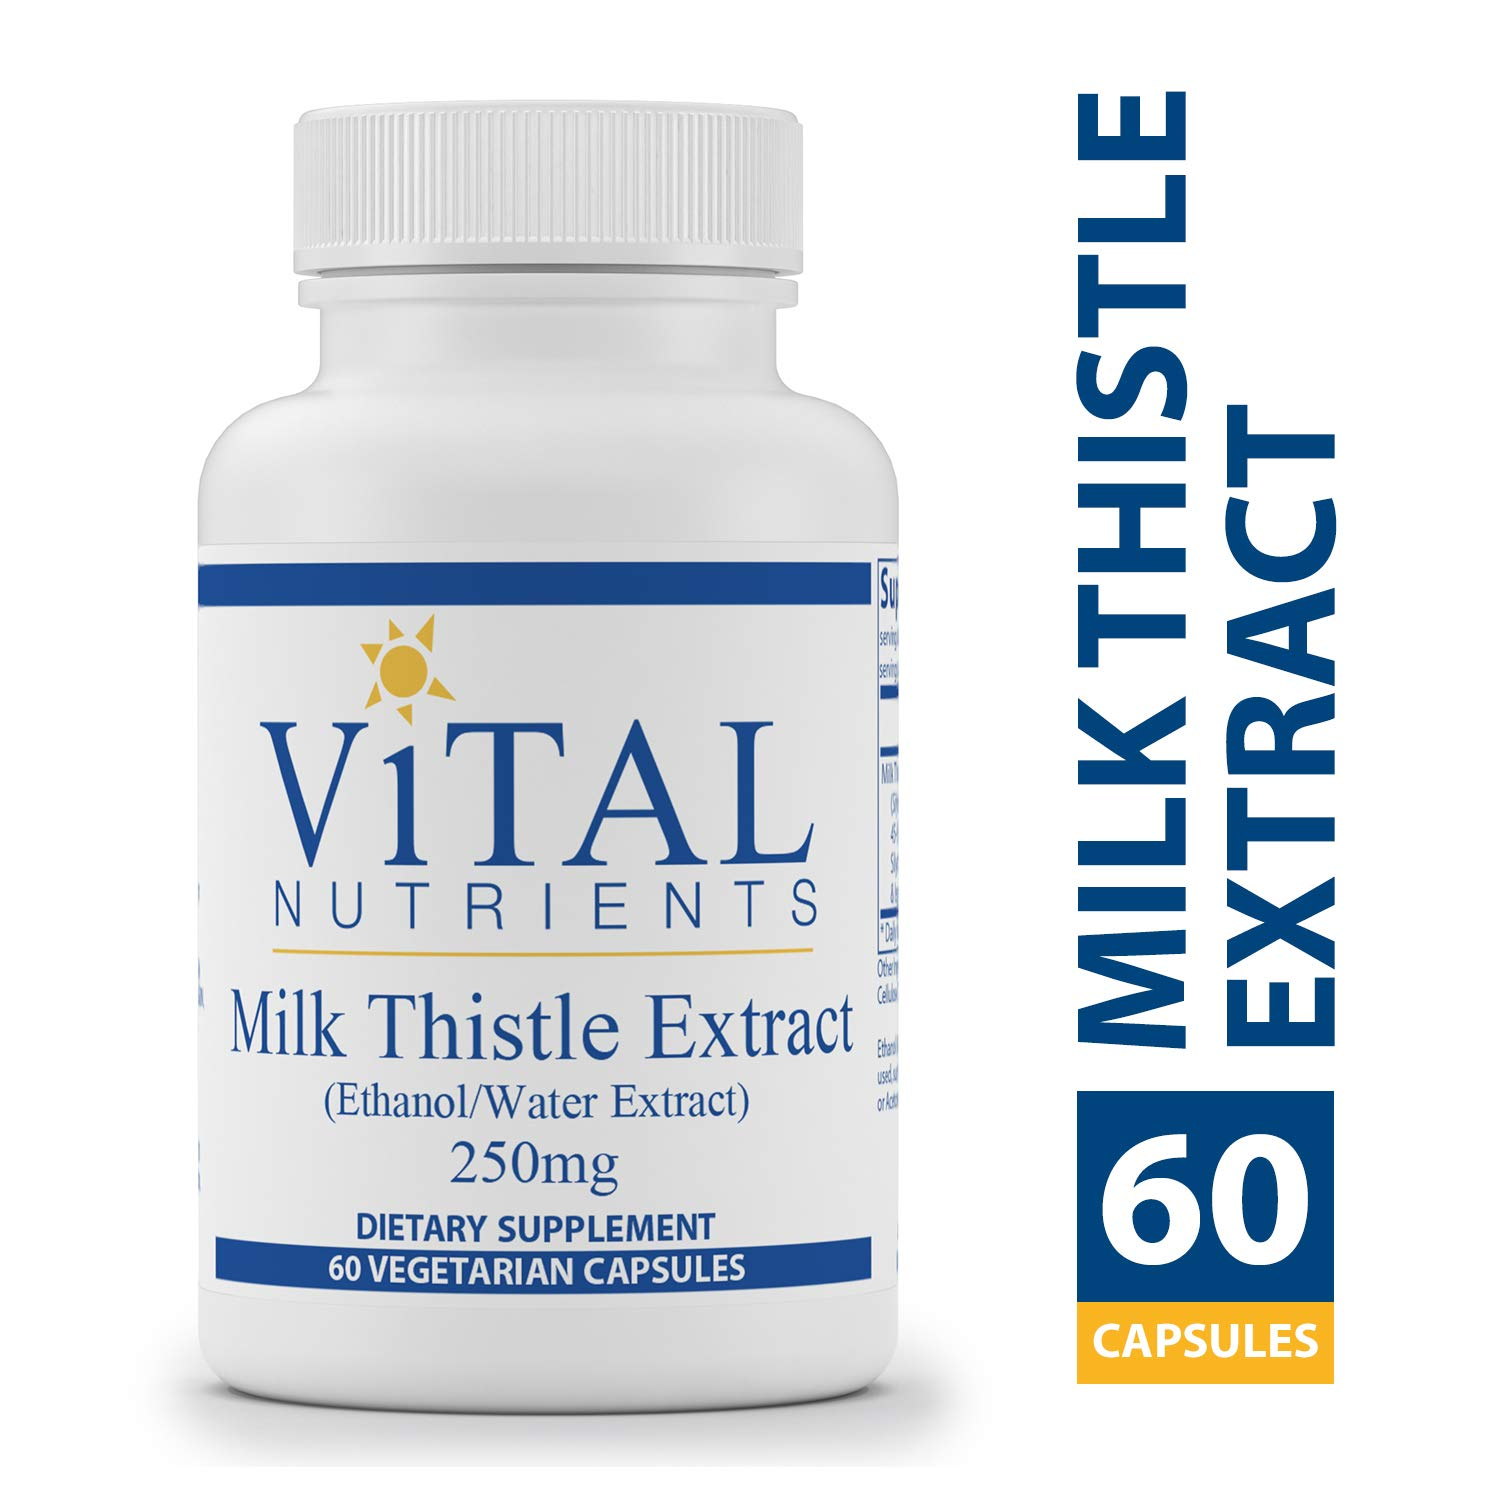 Vital Nutrients – Milk Thistle Extract Ethanol Water Extract 250 mg – Supports Healthy Liver Function and Acts as an Antioxidant – 60 Capsules